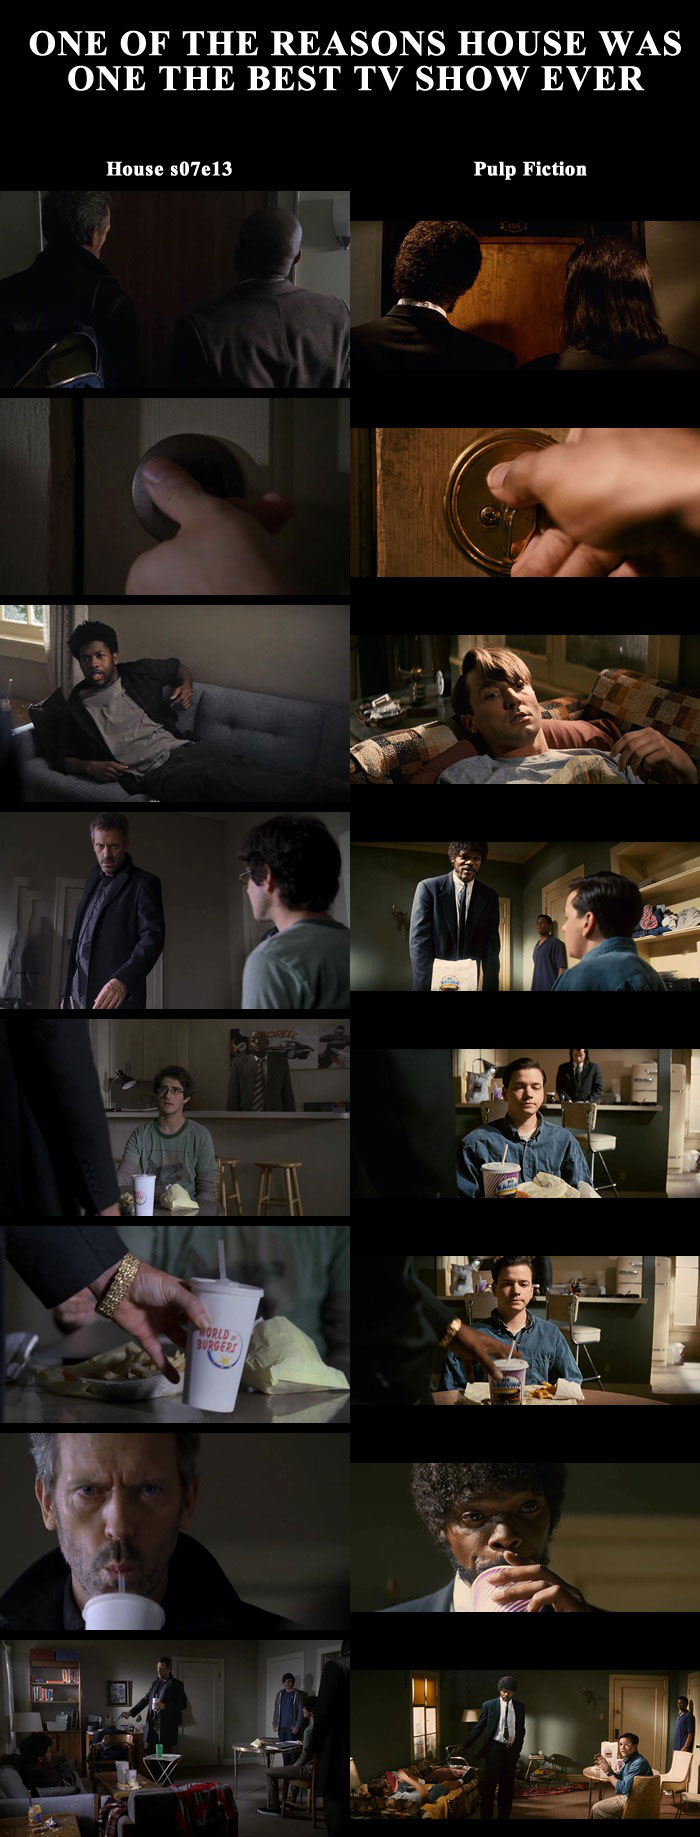 one of the reasons house was one of the best tv shows ever, pulp fiction scene, house s07e13